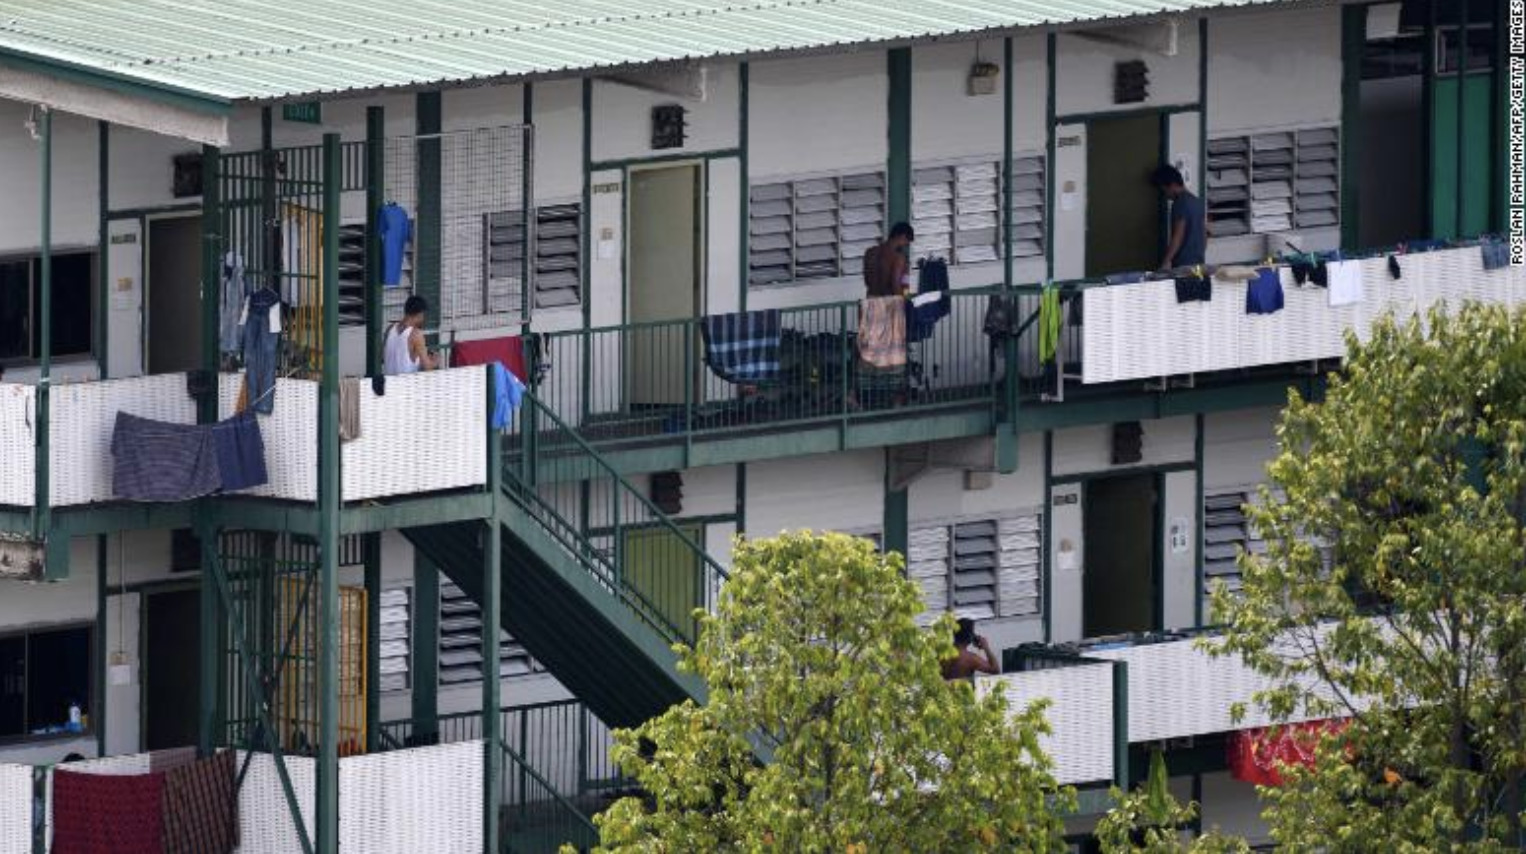 A Dormitory for Migrant Workers in Singapore in 2015, (Kirsten Han, The Interpreter,